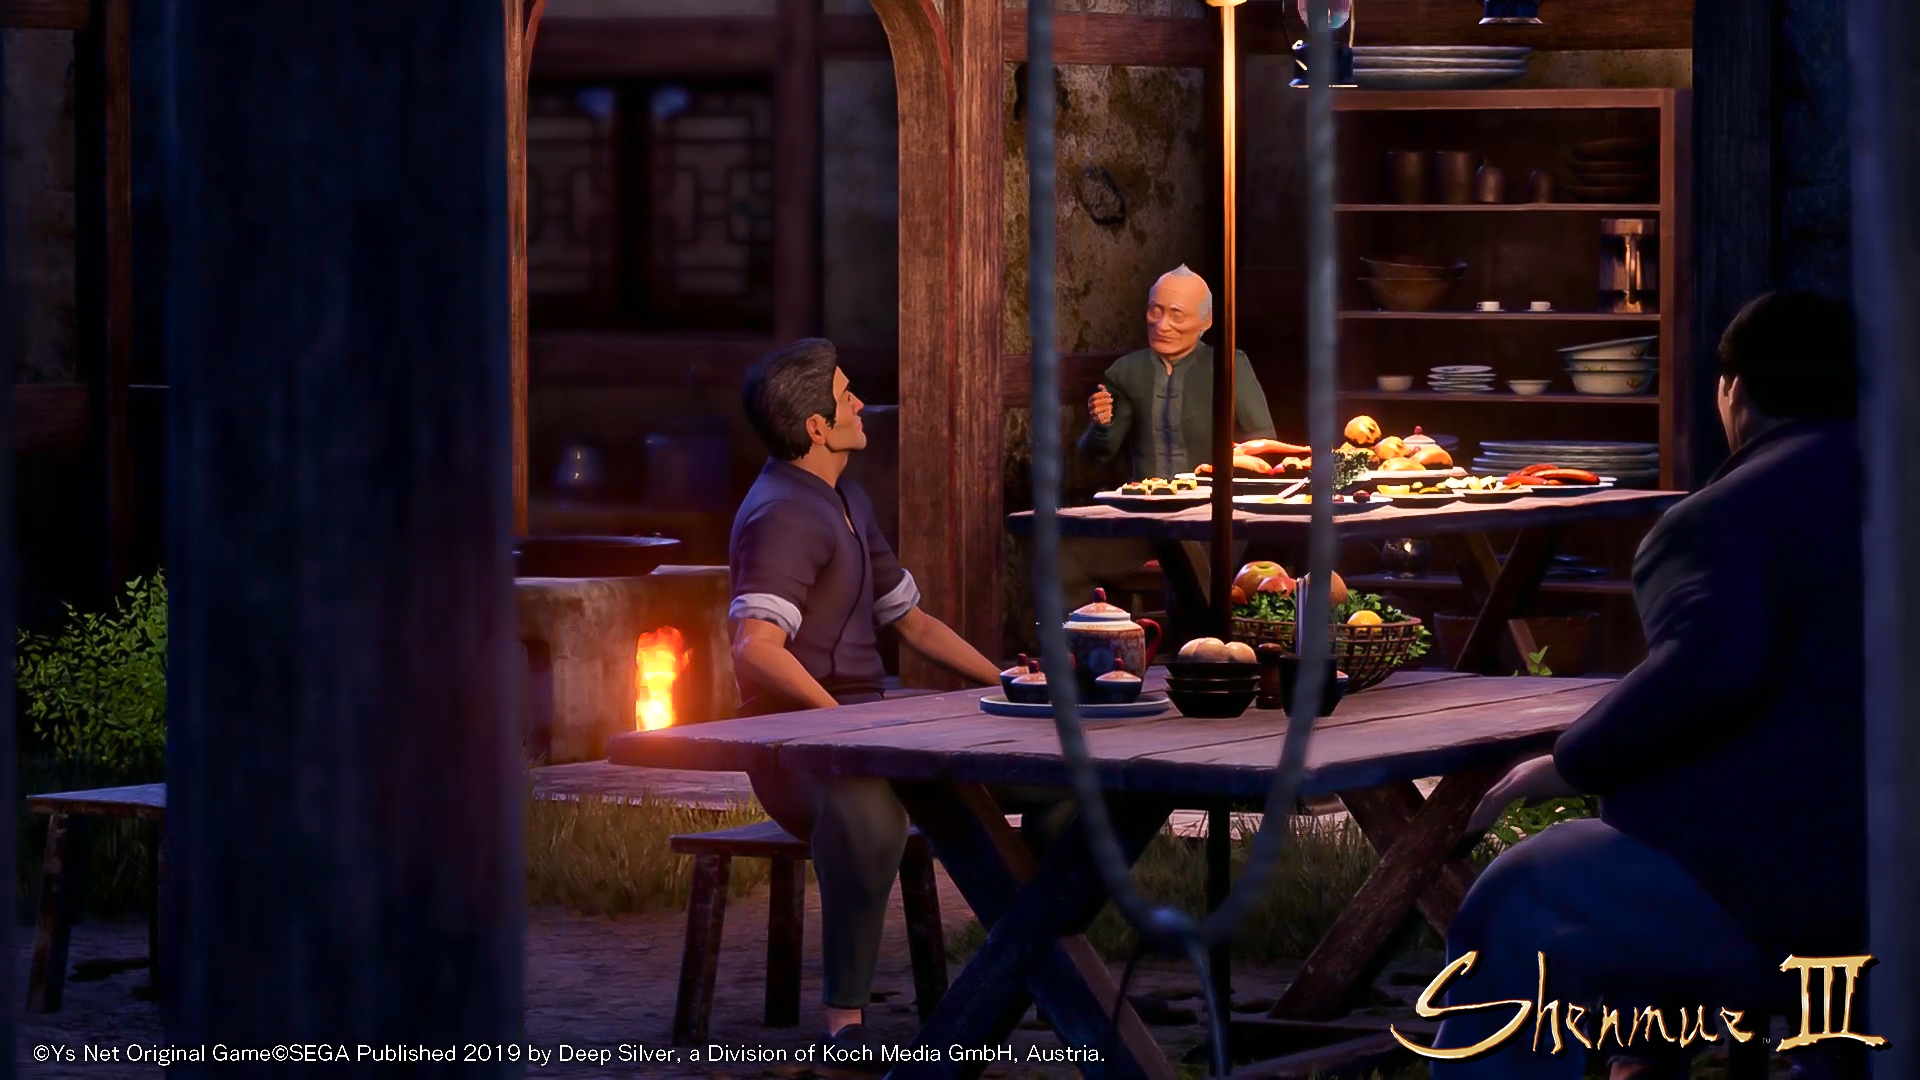 Shenmue III, Shenmue 3, release date, gameplay, trailer, PlayStation 4, game, update, new trailer, tokyo game show 2019, tgs2019